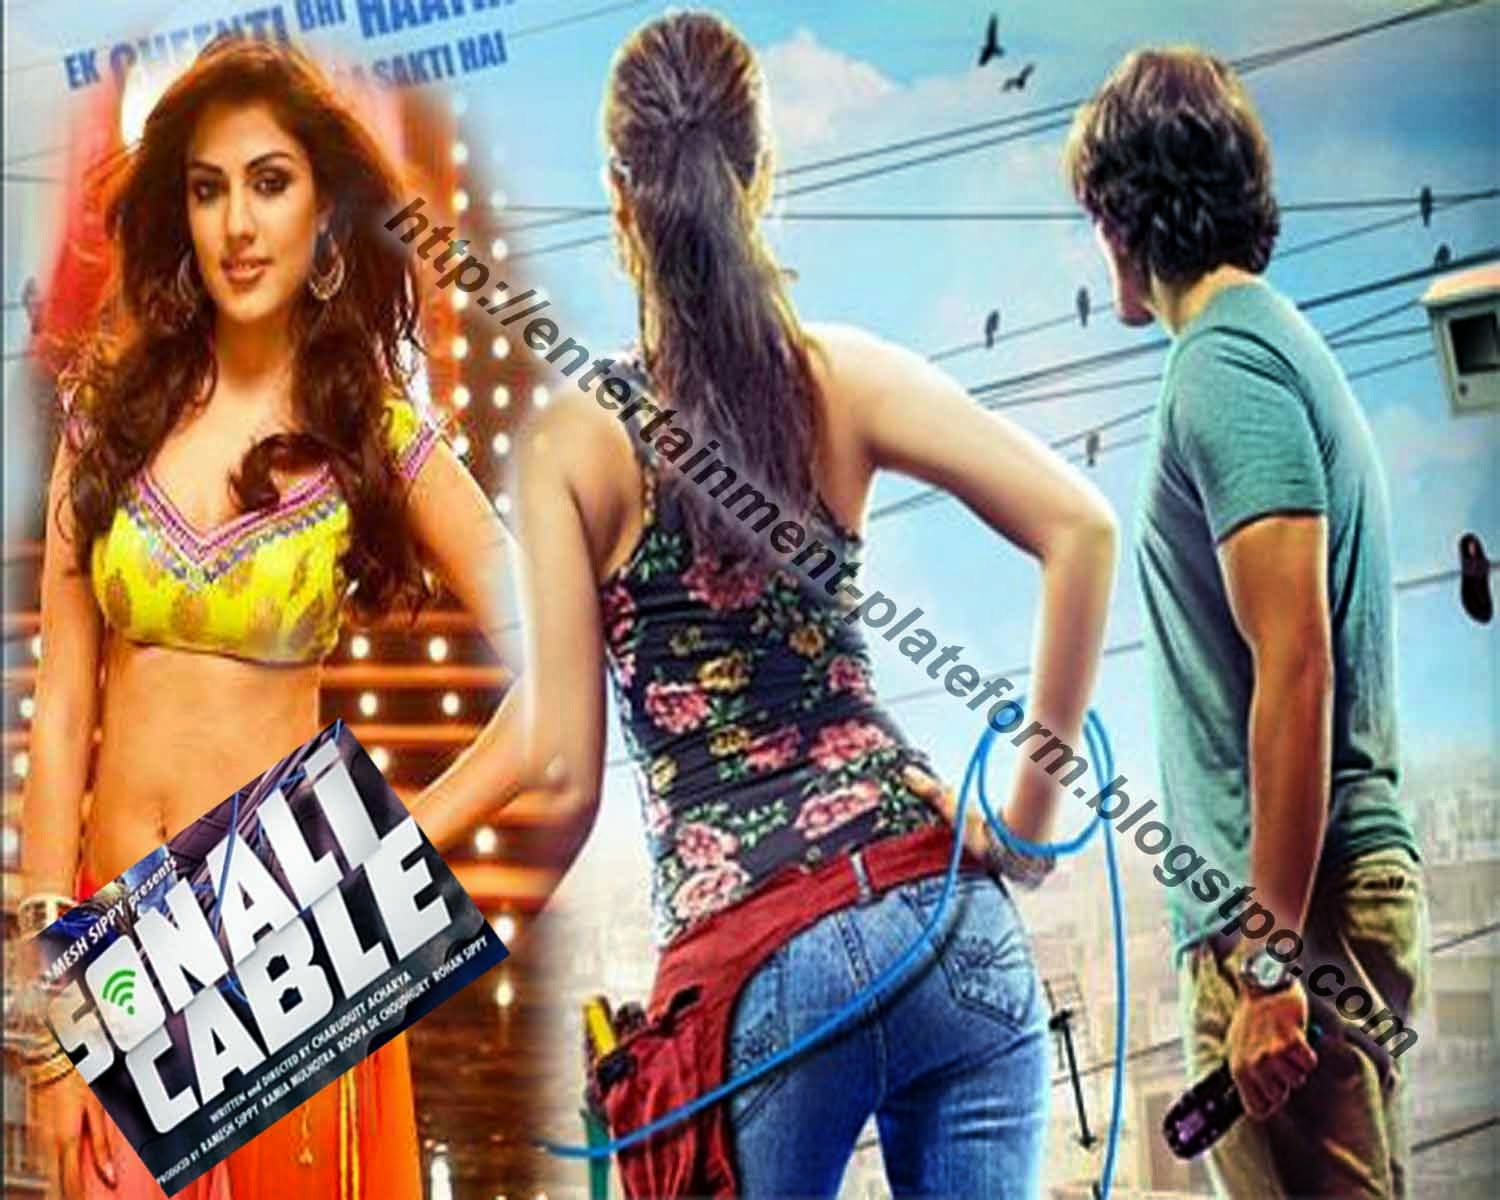 Sonali-Cable-MP3-Songs-Full-Album